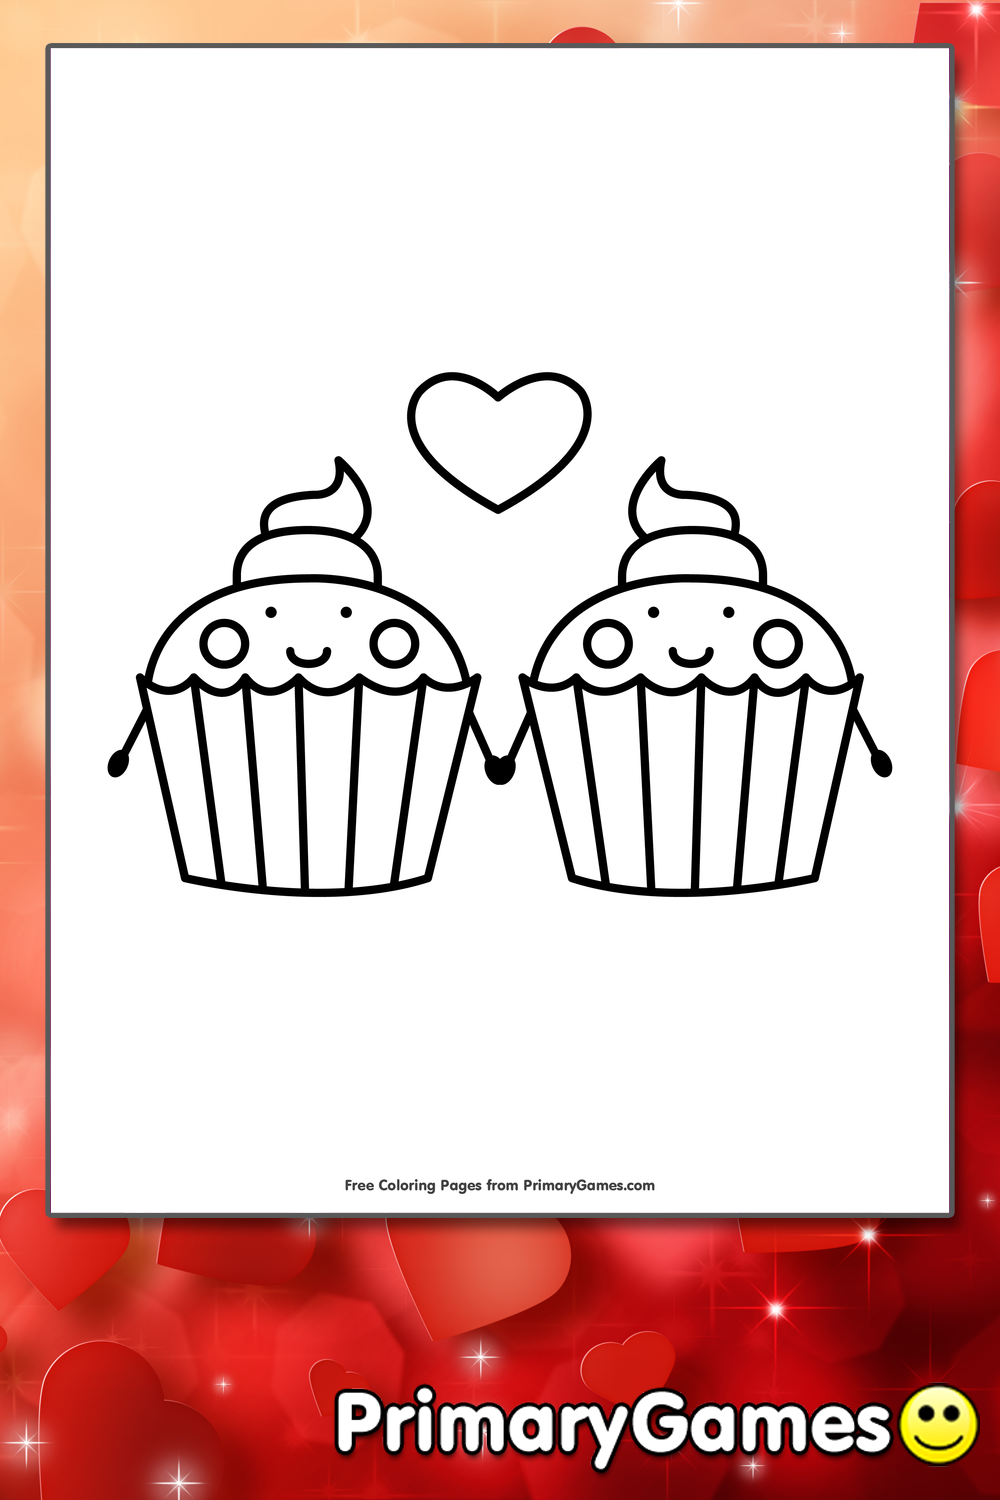 Cupcakes Holding Hands Coloring Page Printable Valentine S Day